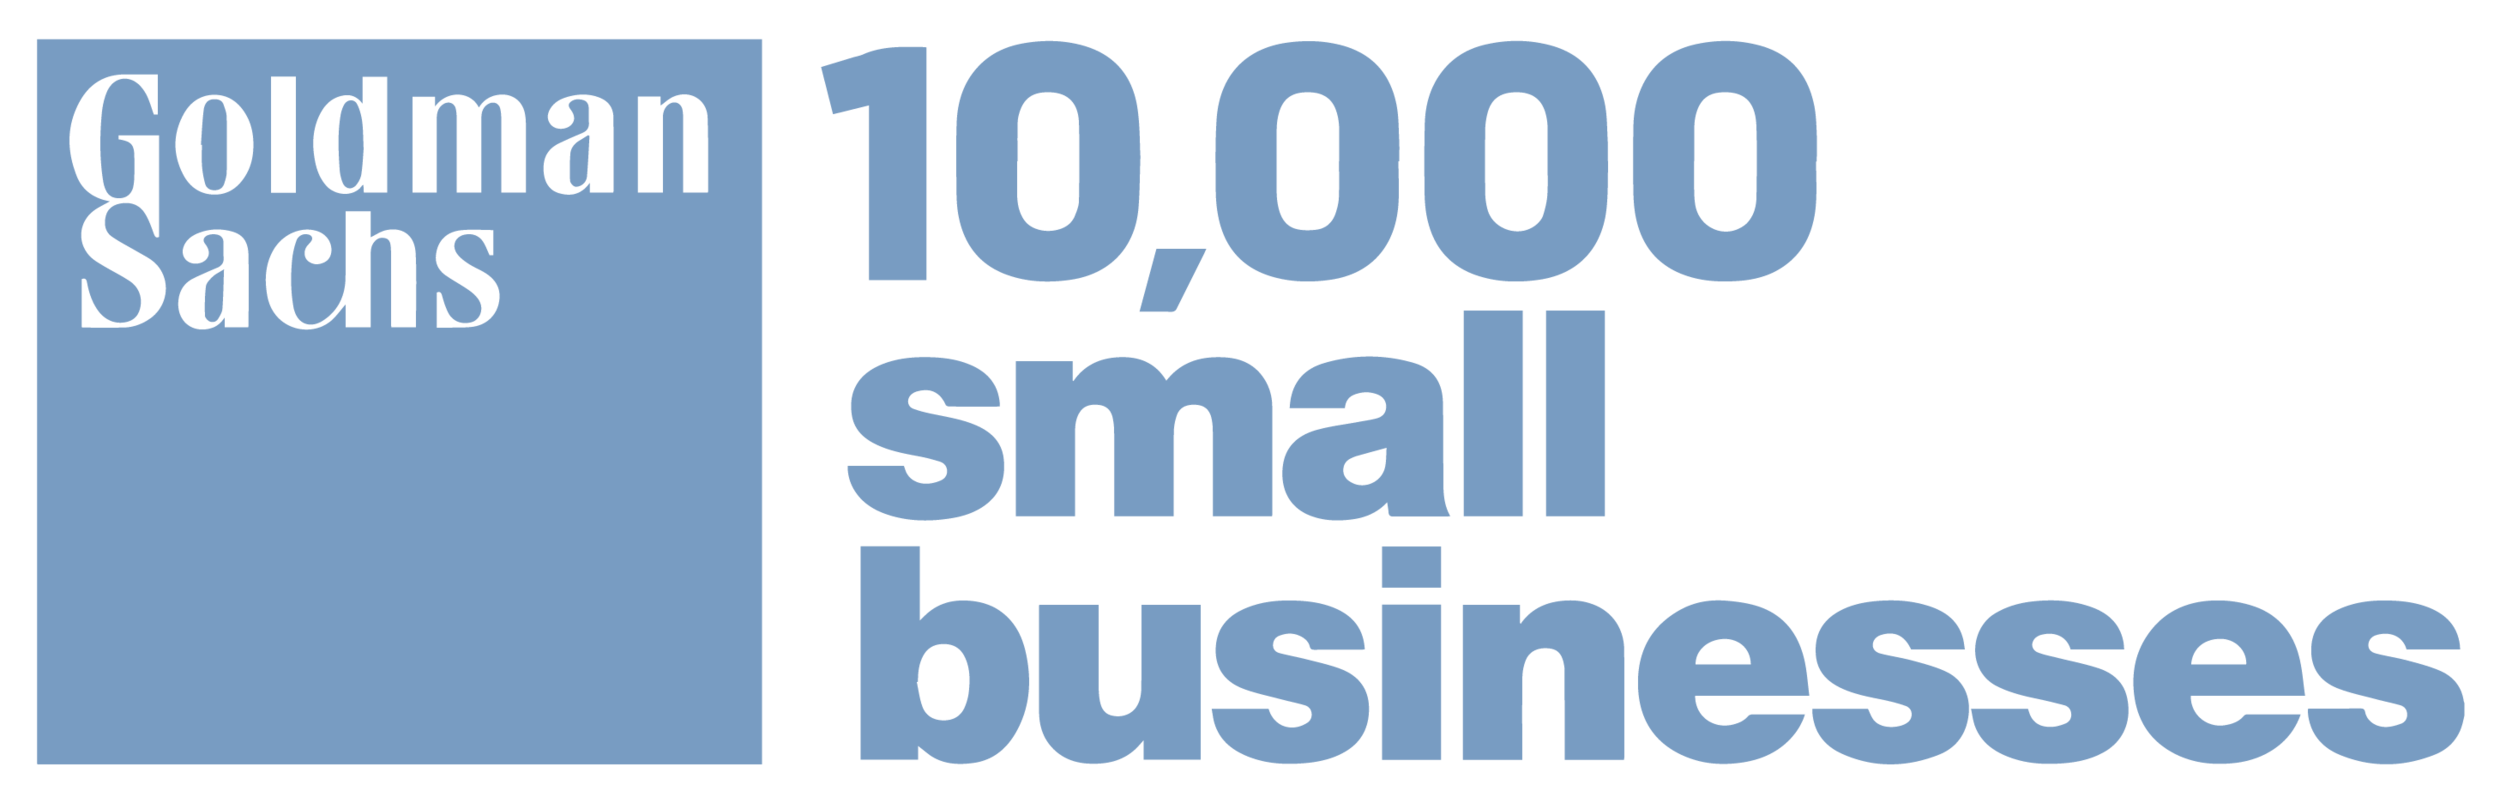 Goldman-Sachs_Small-Business_Logo.png